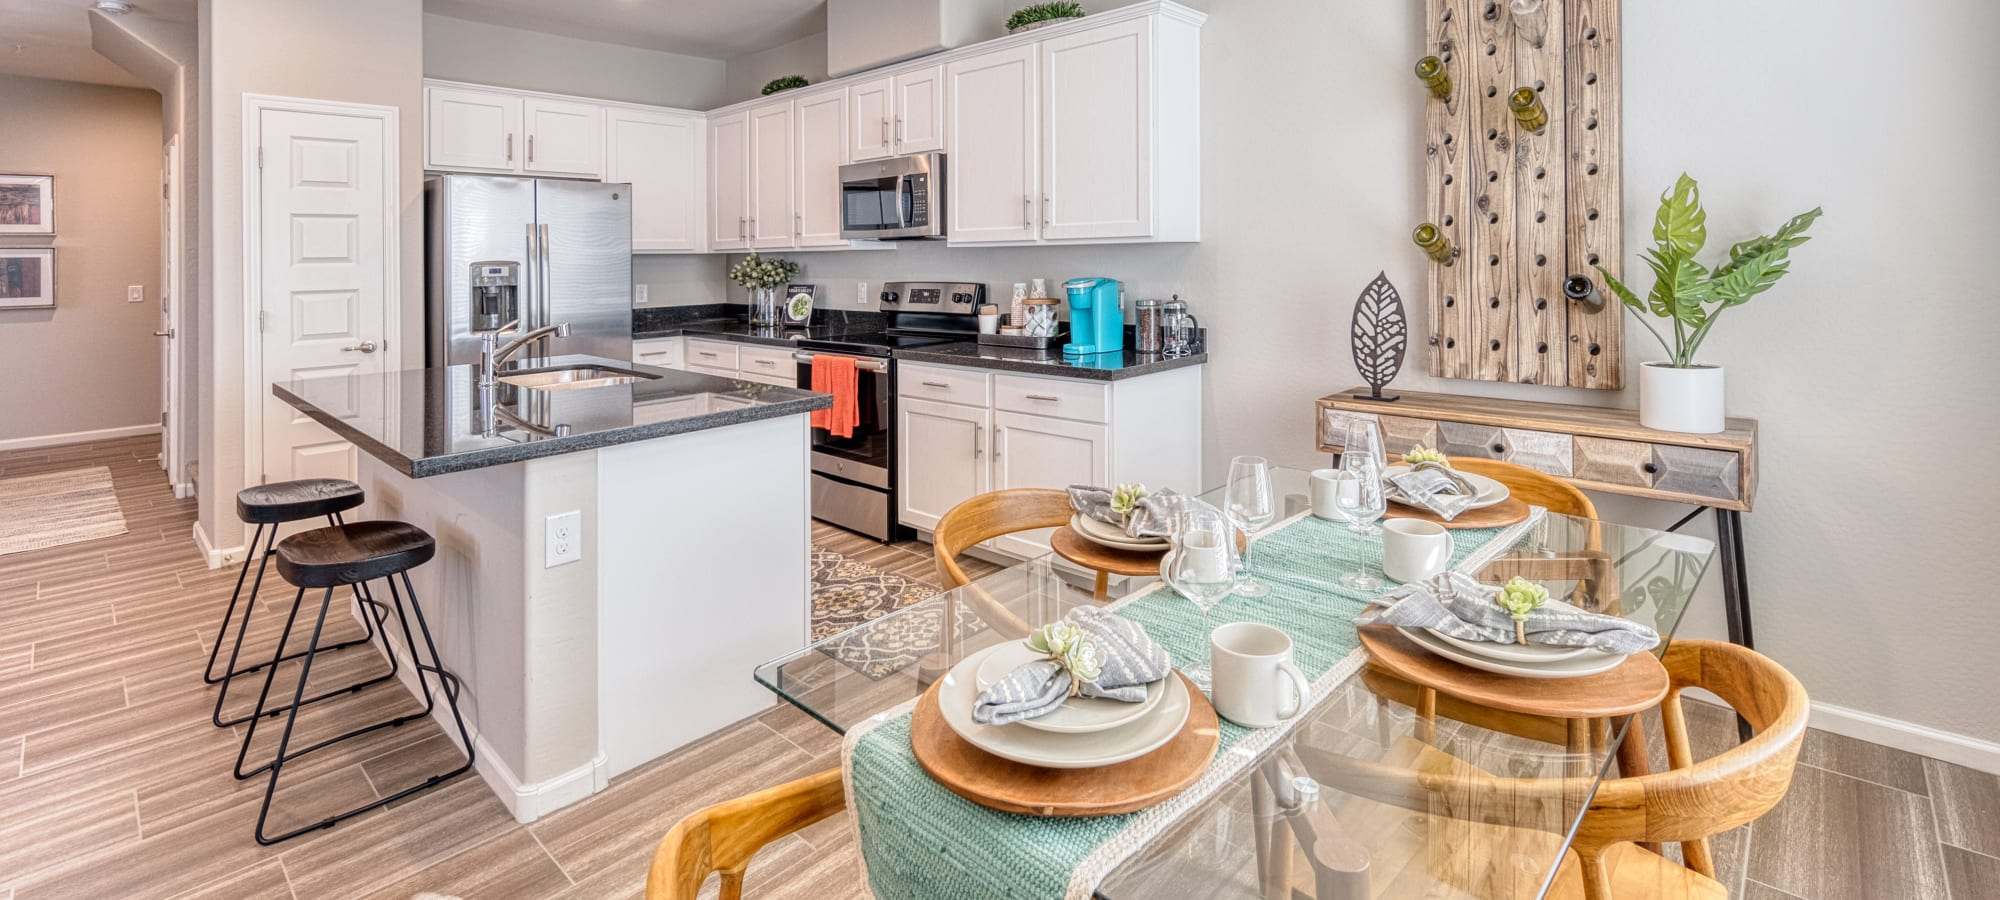 Well decorated kitchen and dining area at BB Living at Val Vista in Gilbert, Arizona